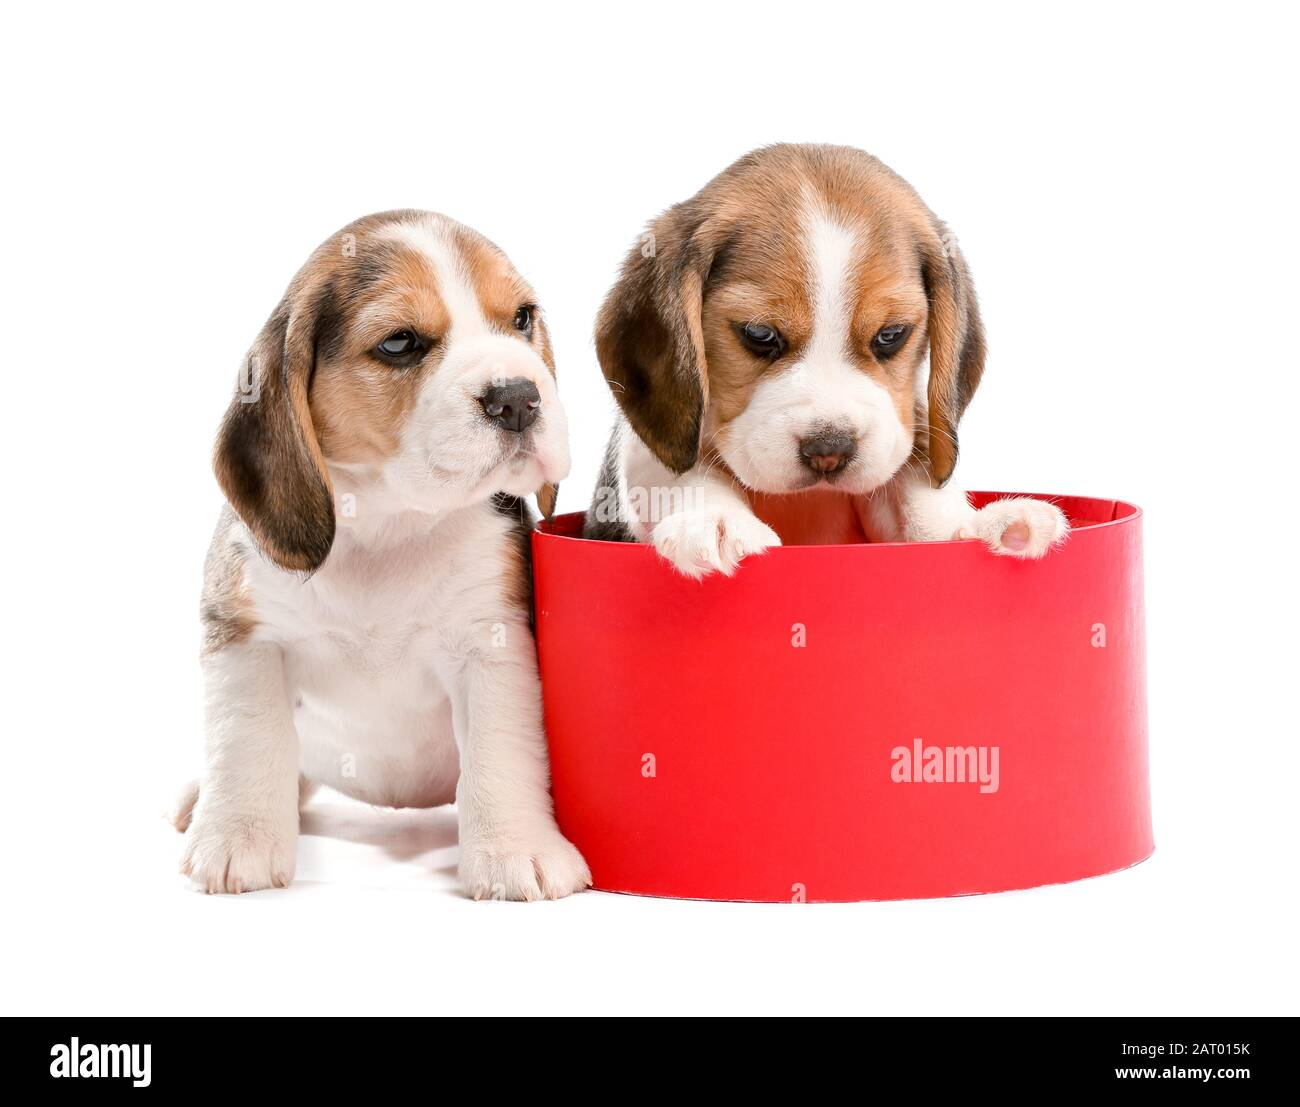 Cute Beagle Puppies With Gift Box On White Background Stock Photo Alamy